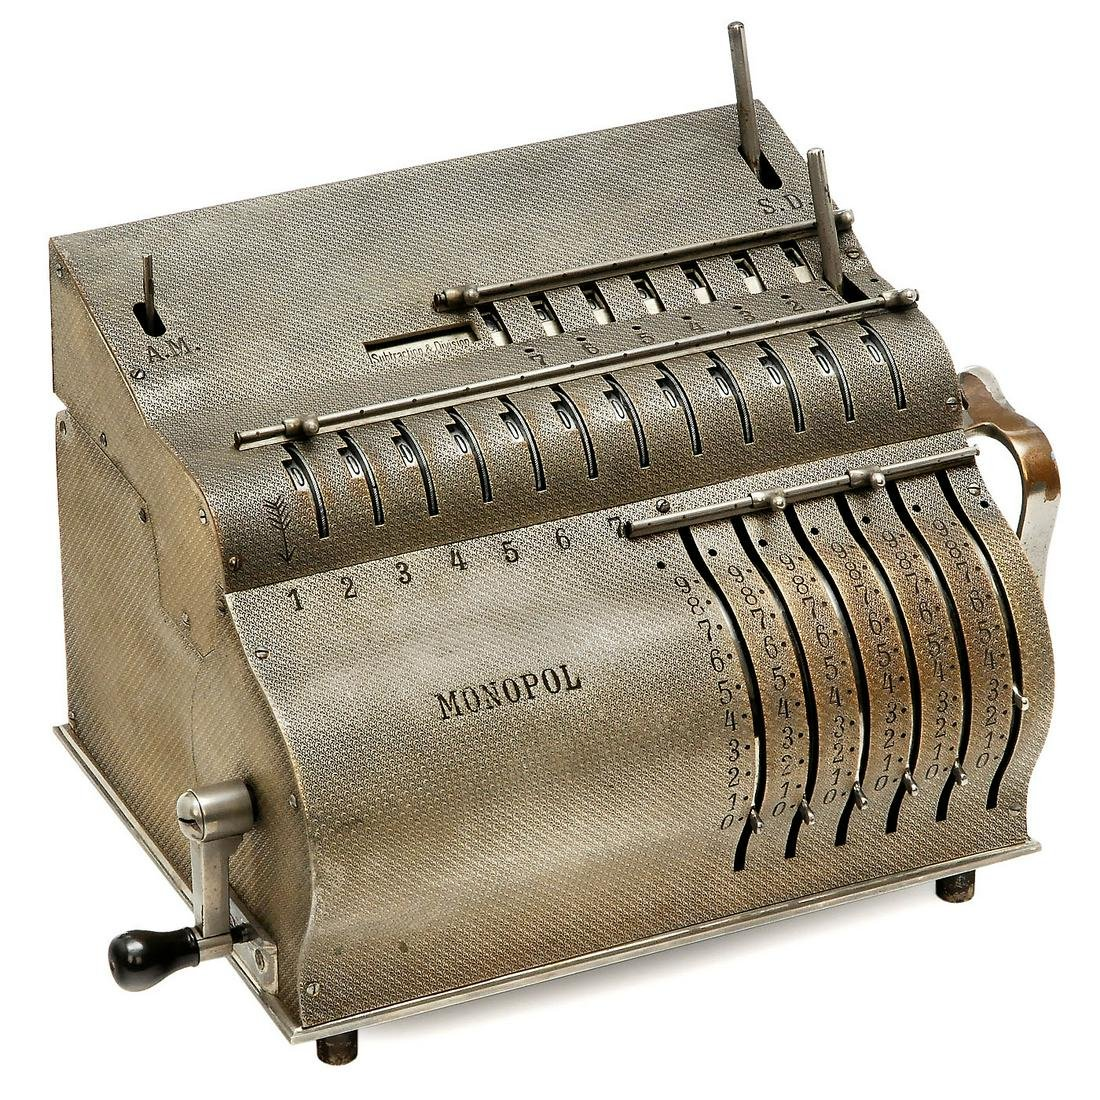 Monopol Calculating Machine, 1902 onwards